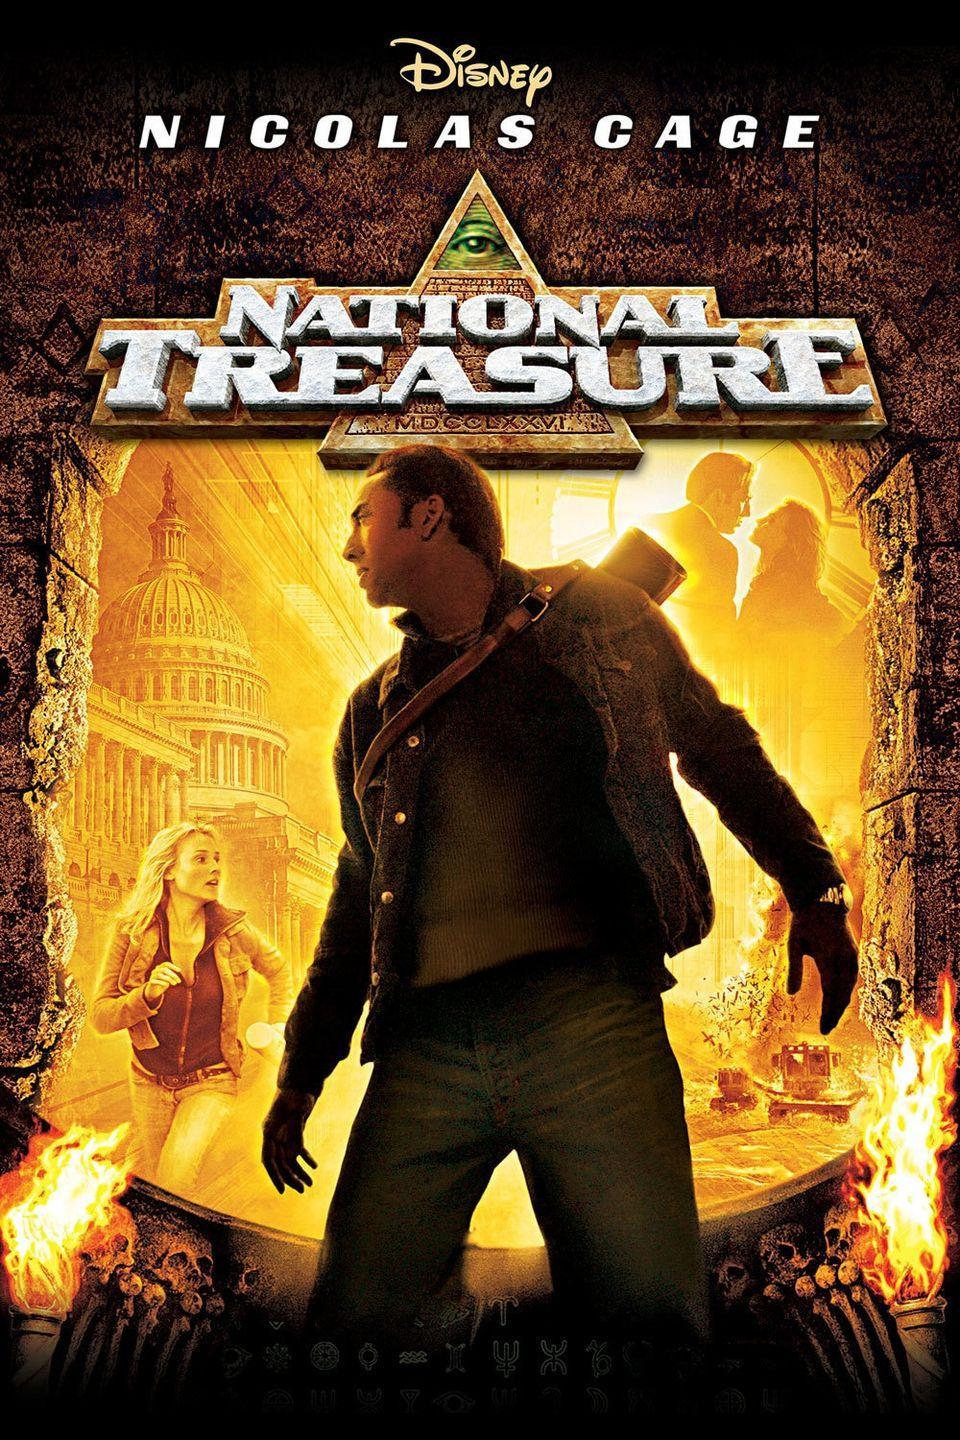 """<p>This historical adventure stars Nicolas Cage as a historian named Ben who has to steal the Declaration of Independence in order to find a hidden treasure. Kids and adults alike are sure to enjoy this captivating movie. </p><p><a class=""""link rapid-noclick-resp"""" href=""""https://go.redirectingat.com?id=74968X1596630&url=https%3A%2F%2Fwww.disneyplus.com%2Fmovies%2Fnational-treasure%2F4OSB77mZE37z&sref=https%3A%2F%2Fwww.womansday.com%2Flife%2Fentertainment%2Fg36156094%2F4th-of-july-movies%2F"""" rel=""""nofollow noopener"""" target=""""_blank"""" data-ylk=""""slk:STREAM NOW"""">STREAM NOW</a></p>"""